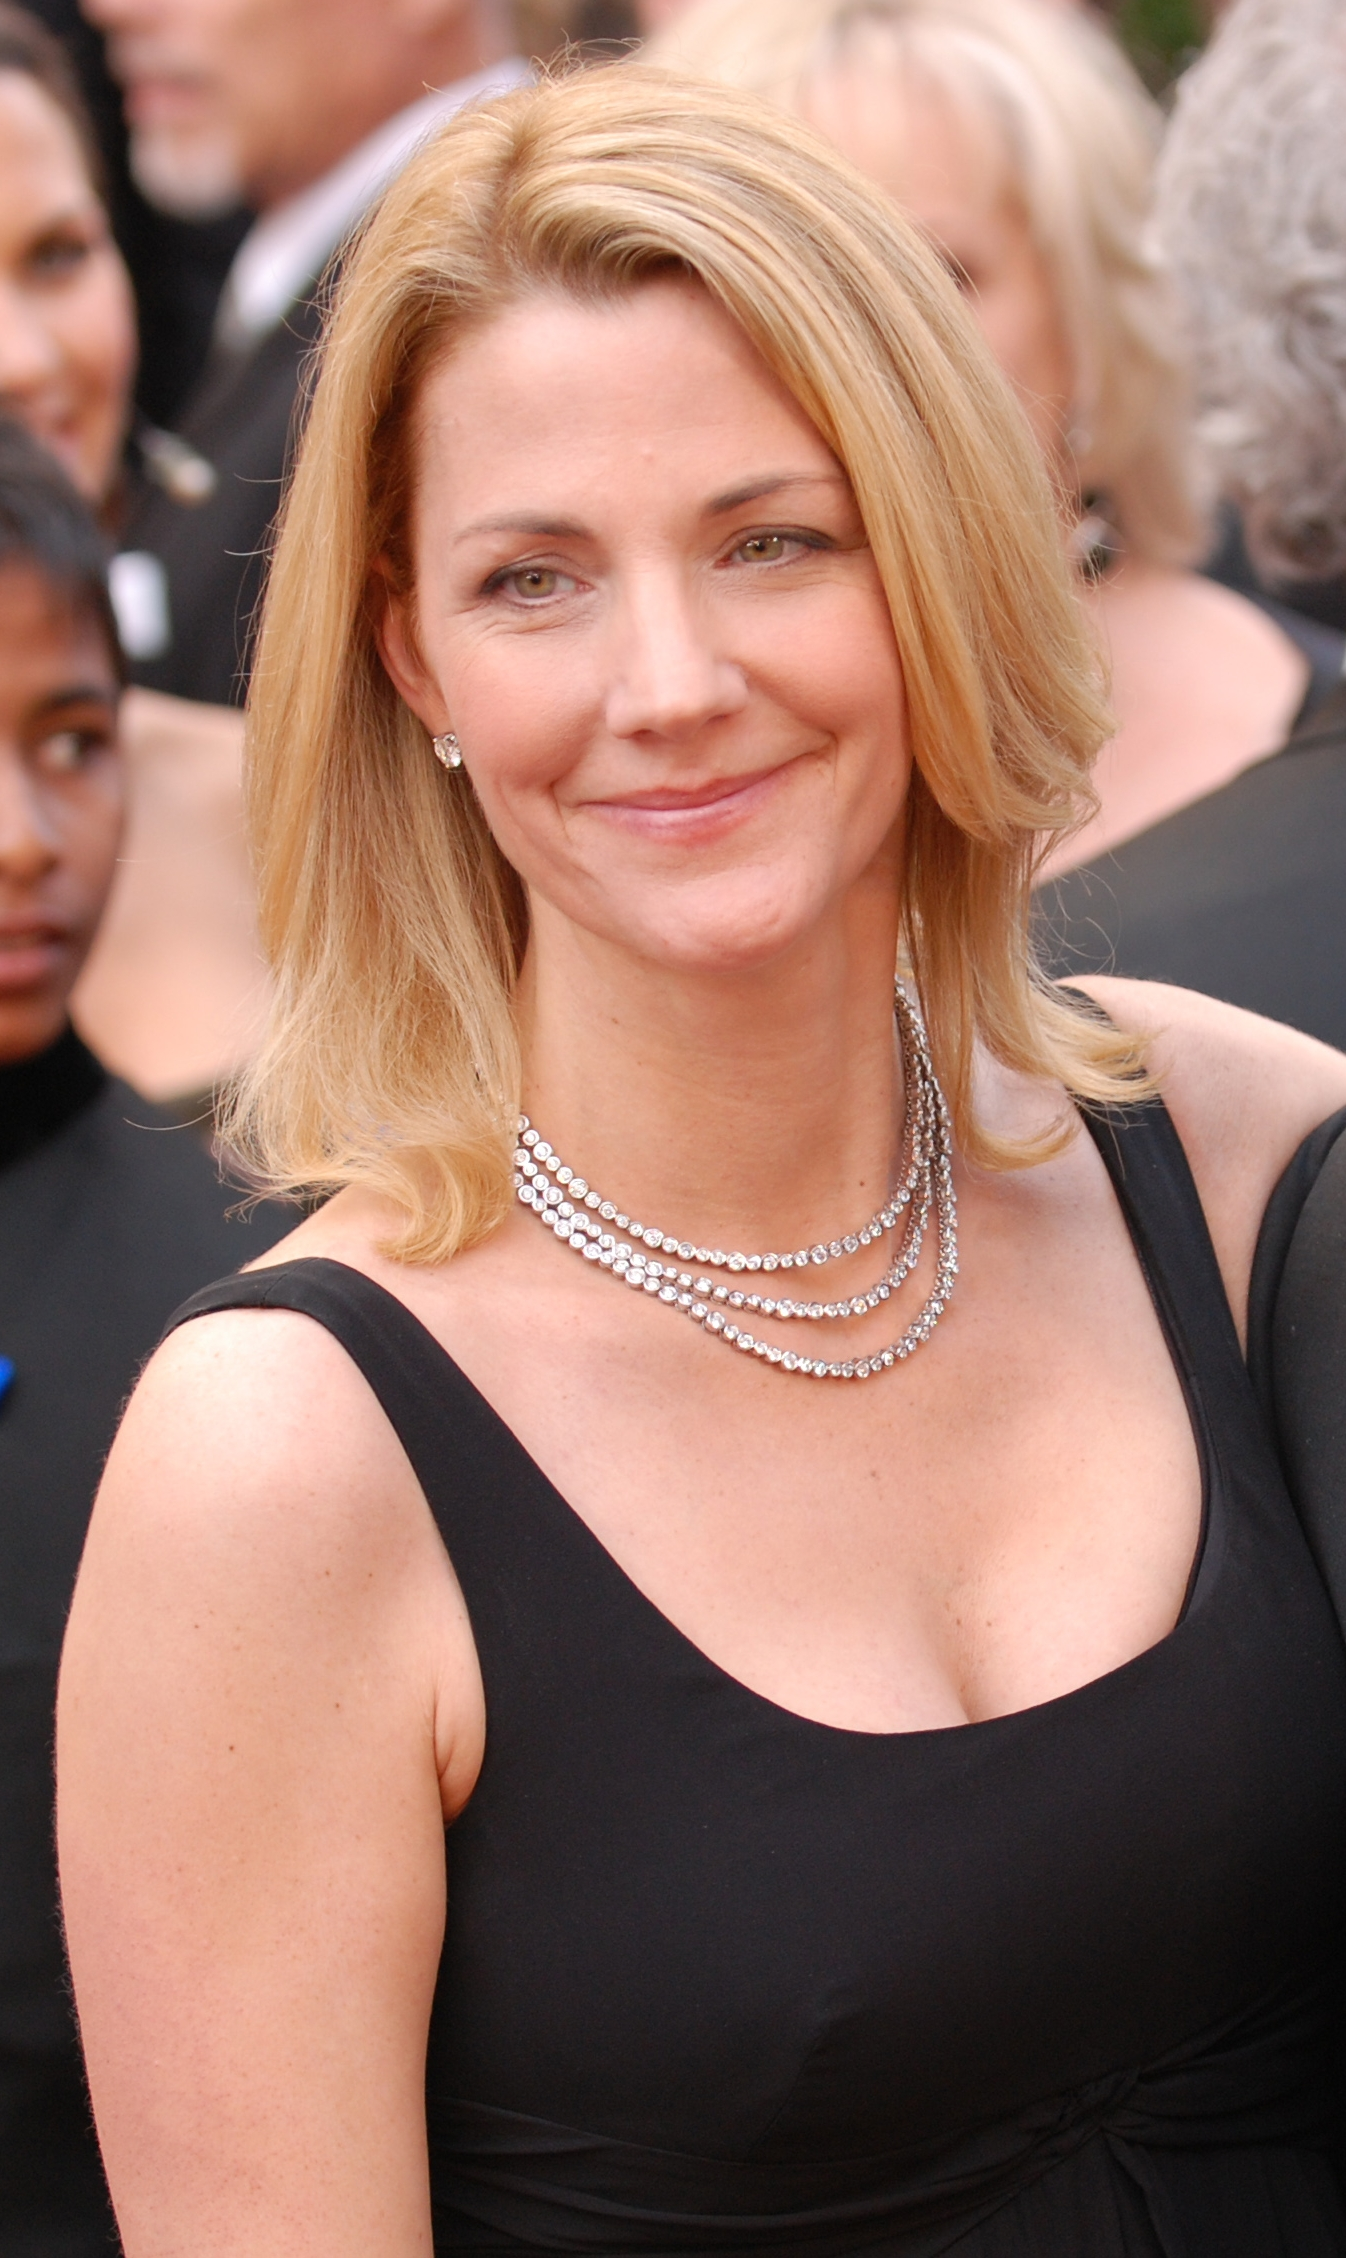 Nancy Carell Wikipedia Her work has been viewed at over 45. wikipedia